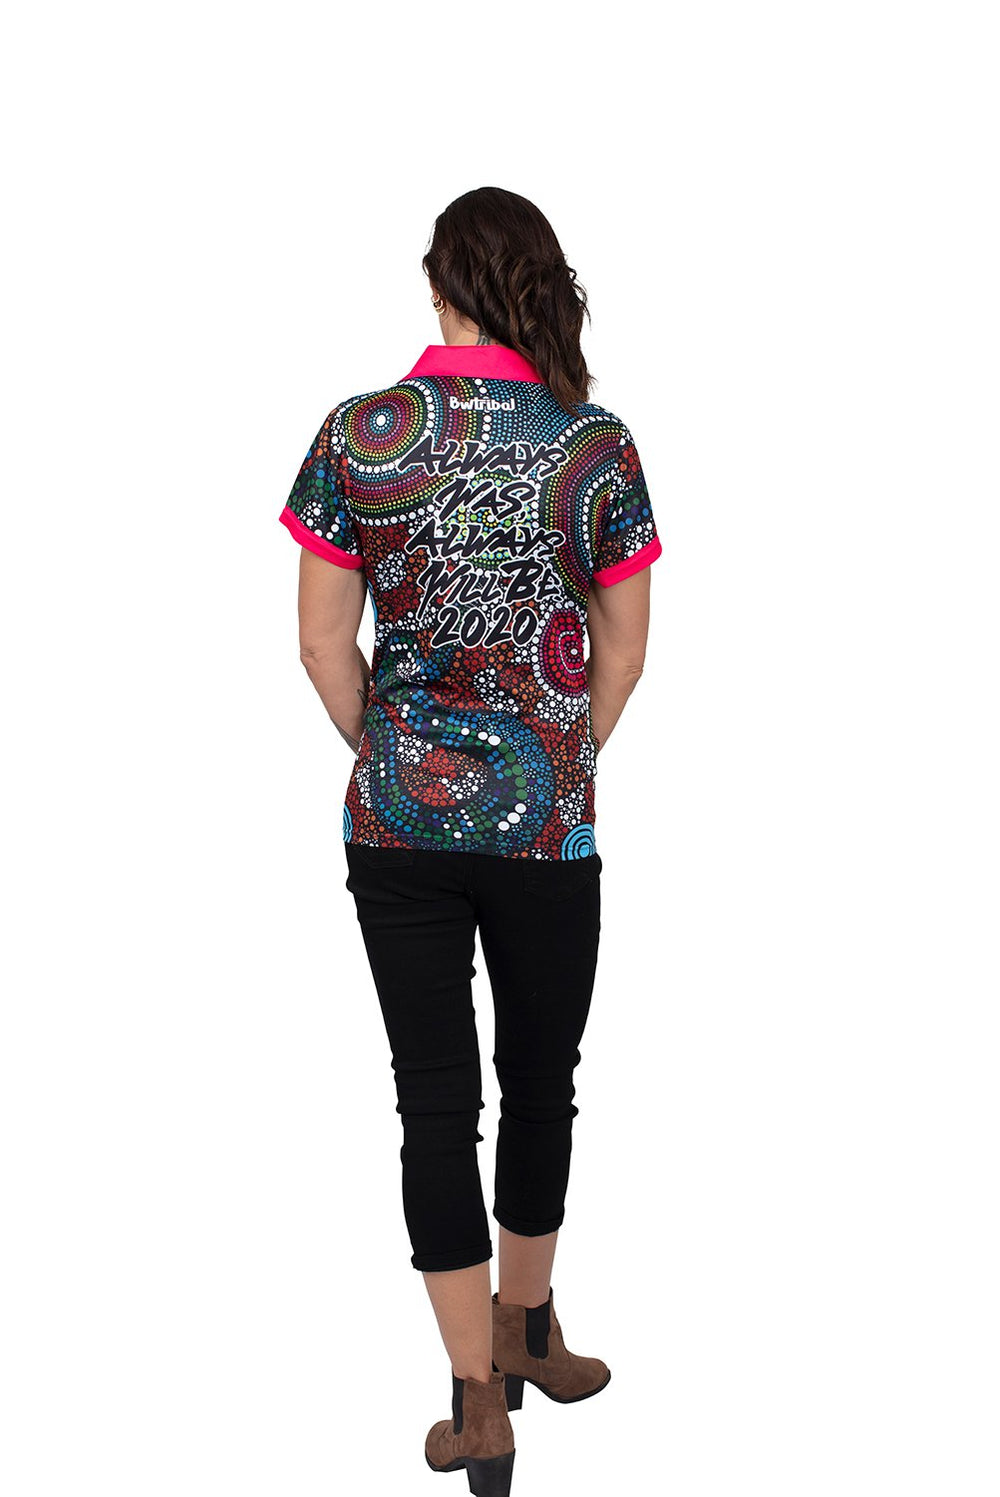 Wagual (Rainbow Serpent) Women's Polo - BW Tribal